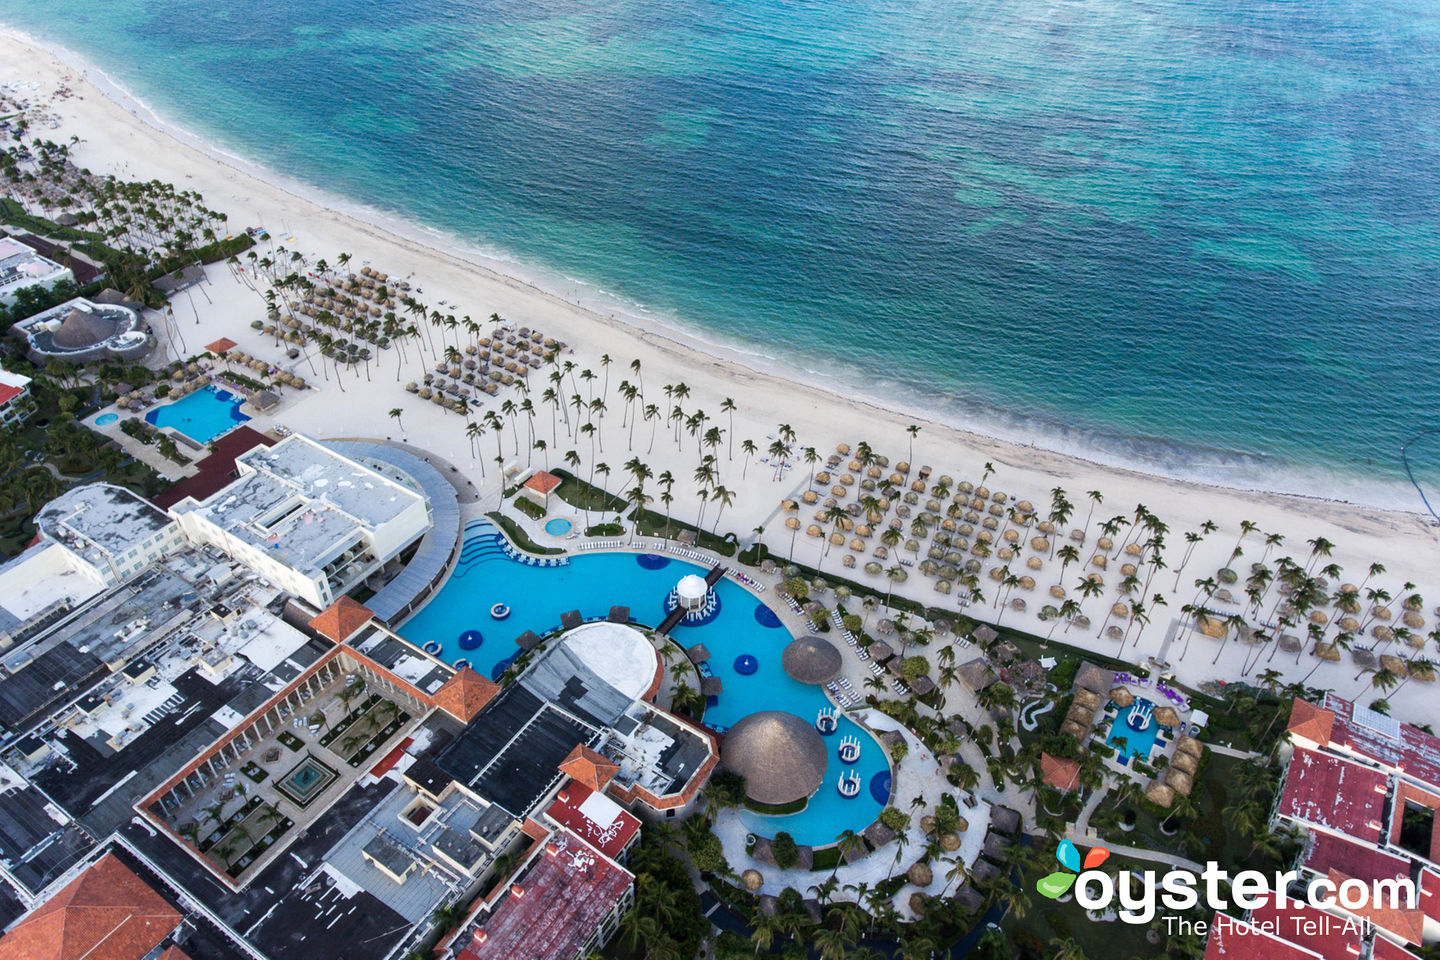 Aerial View of Paradisus Palma Real Golf & Spa Resort/Oyster